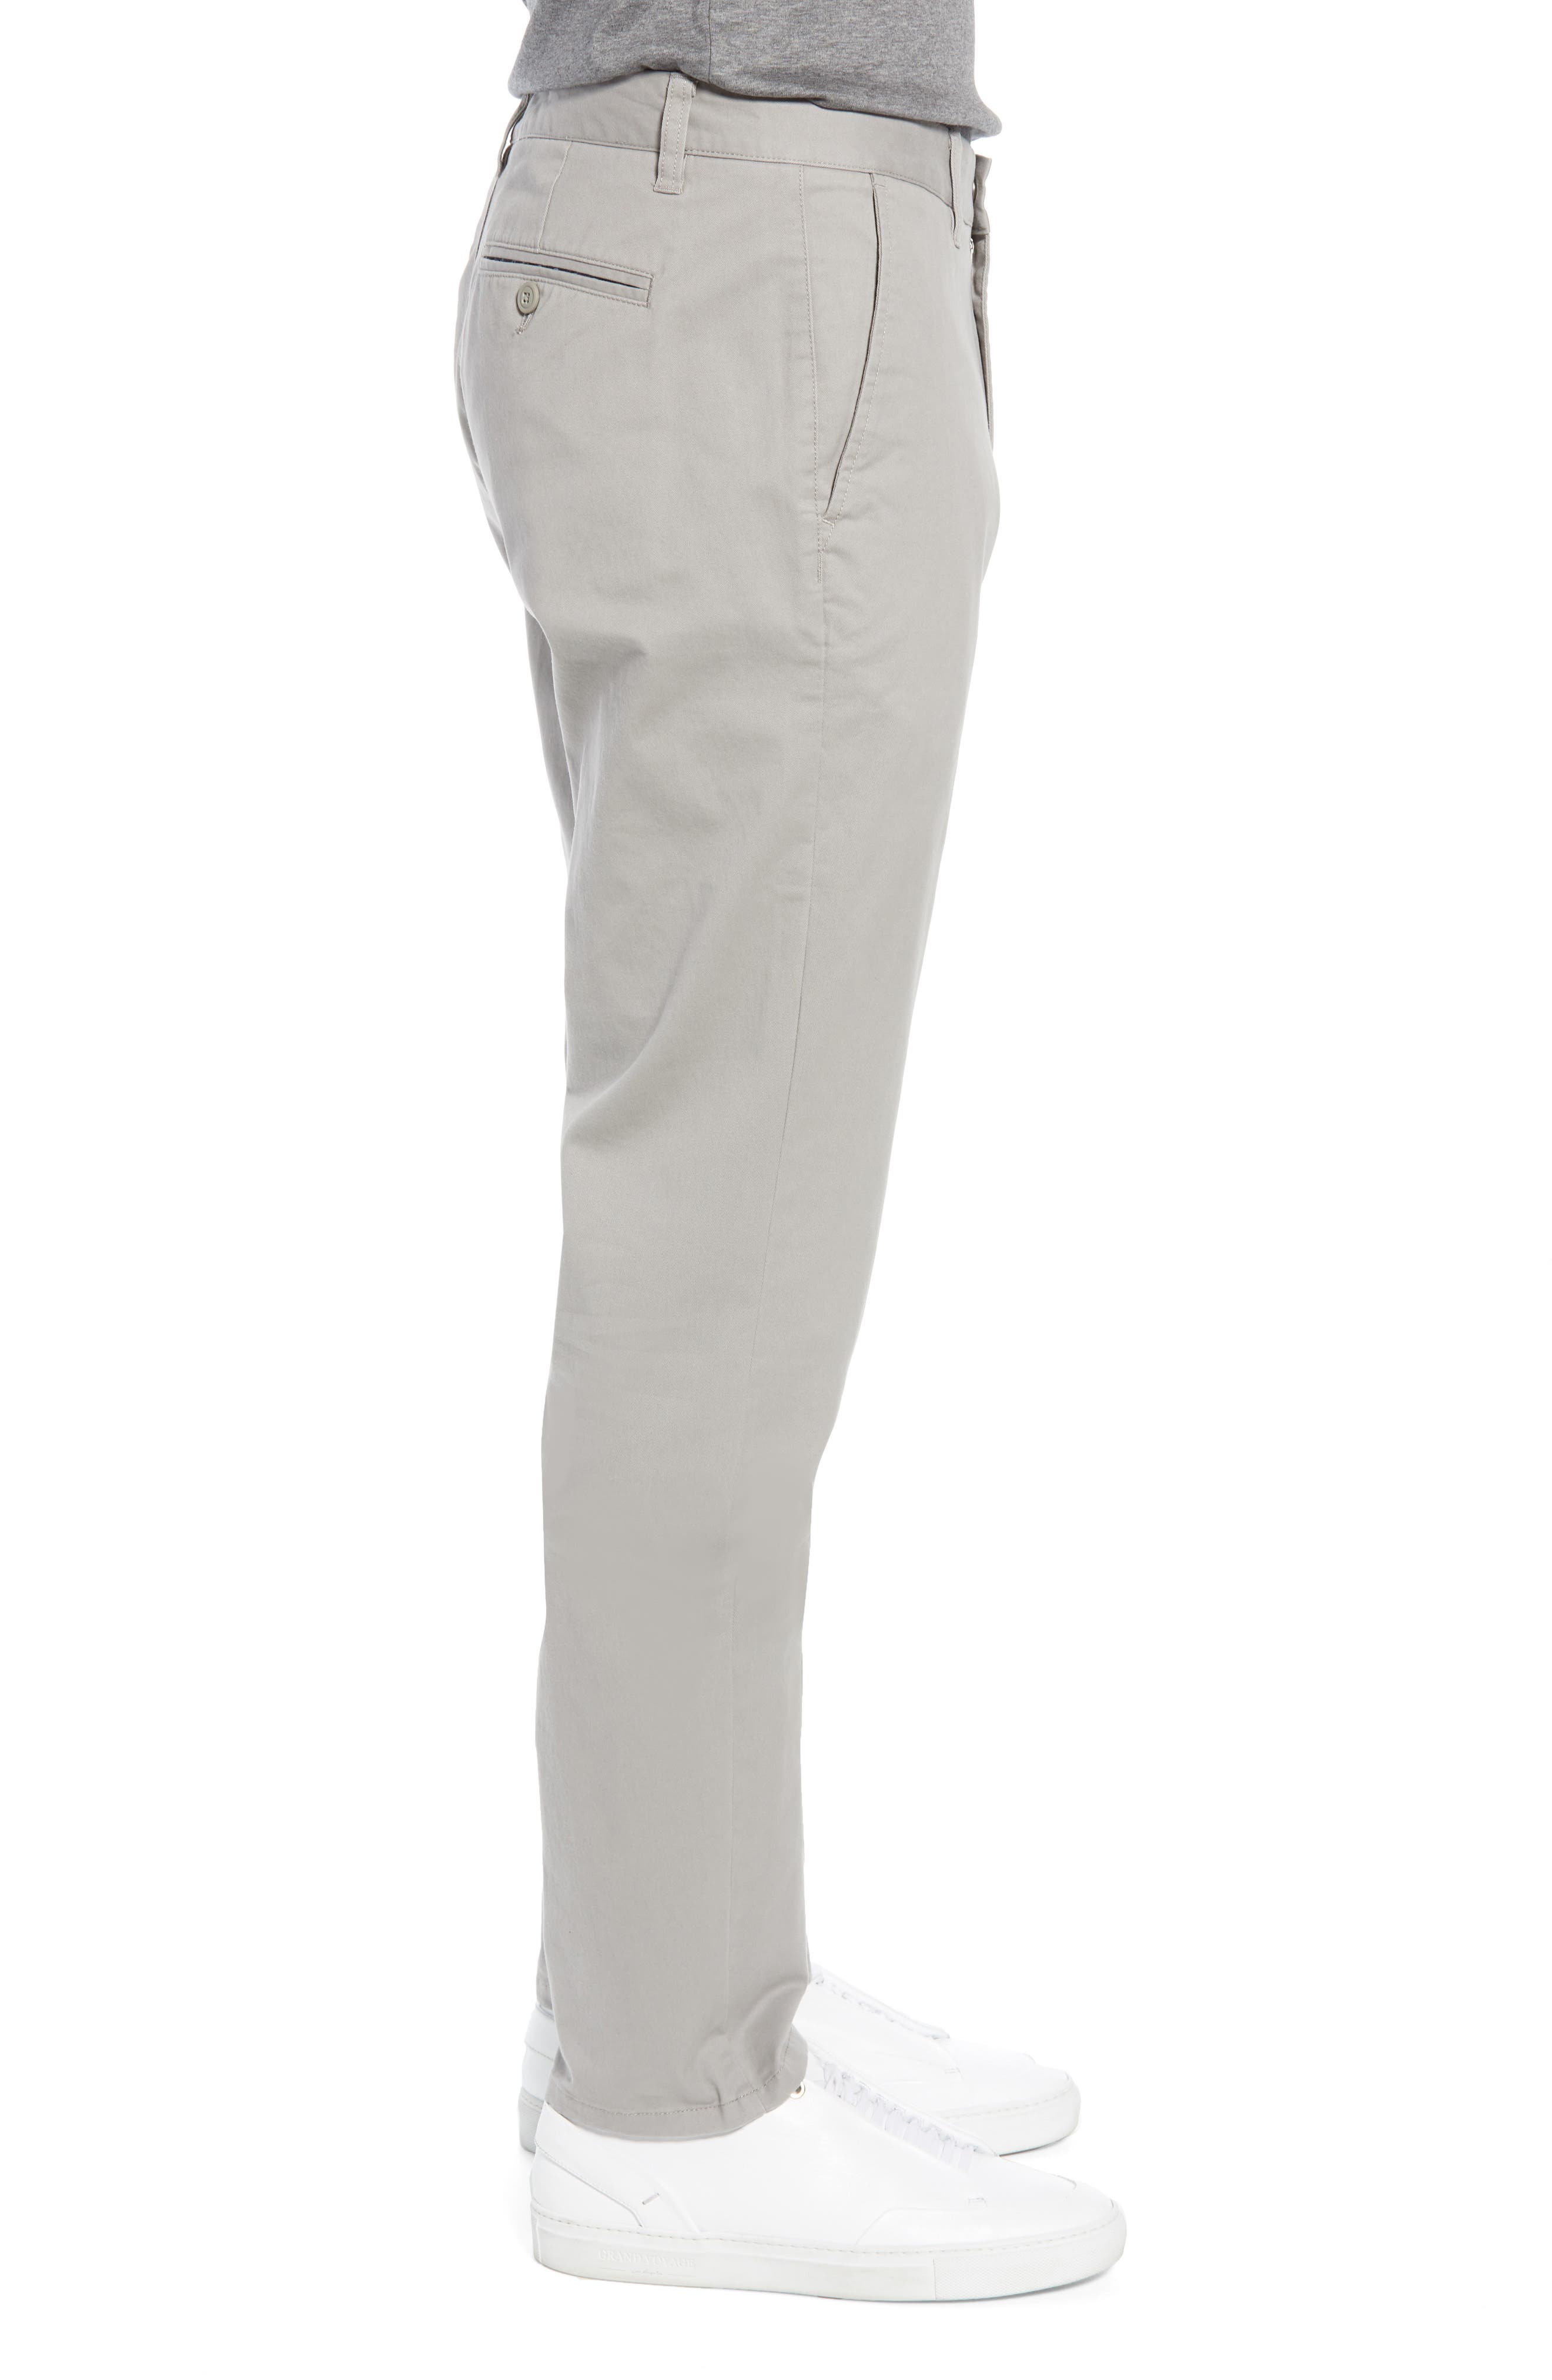 BONOBOS,                             Athletic Fit Stretch Washed Chinos,                             Alternate thumbnail 3, color,                             GREY DOGS